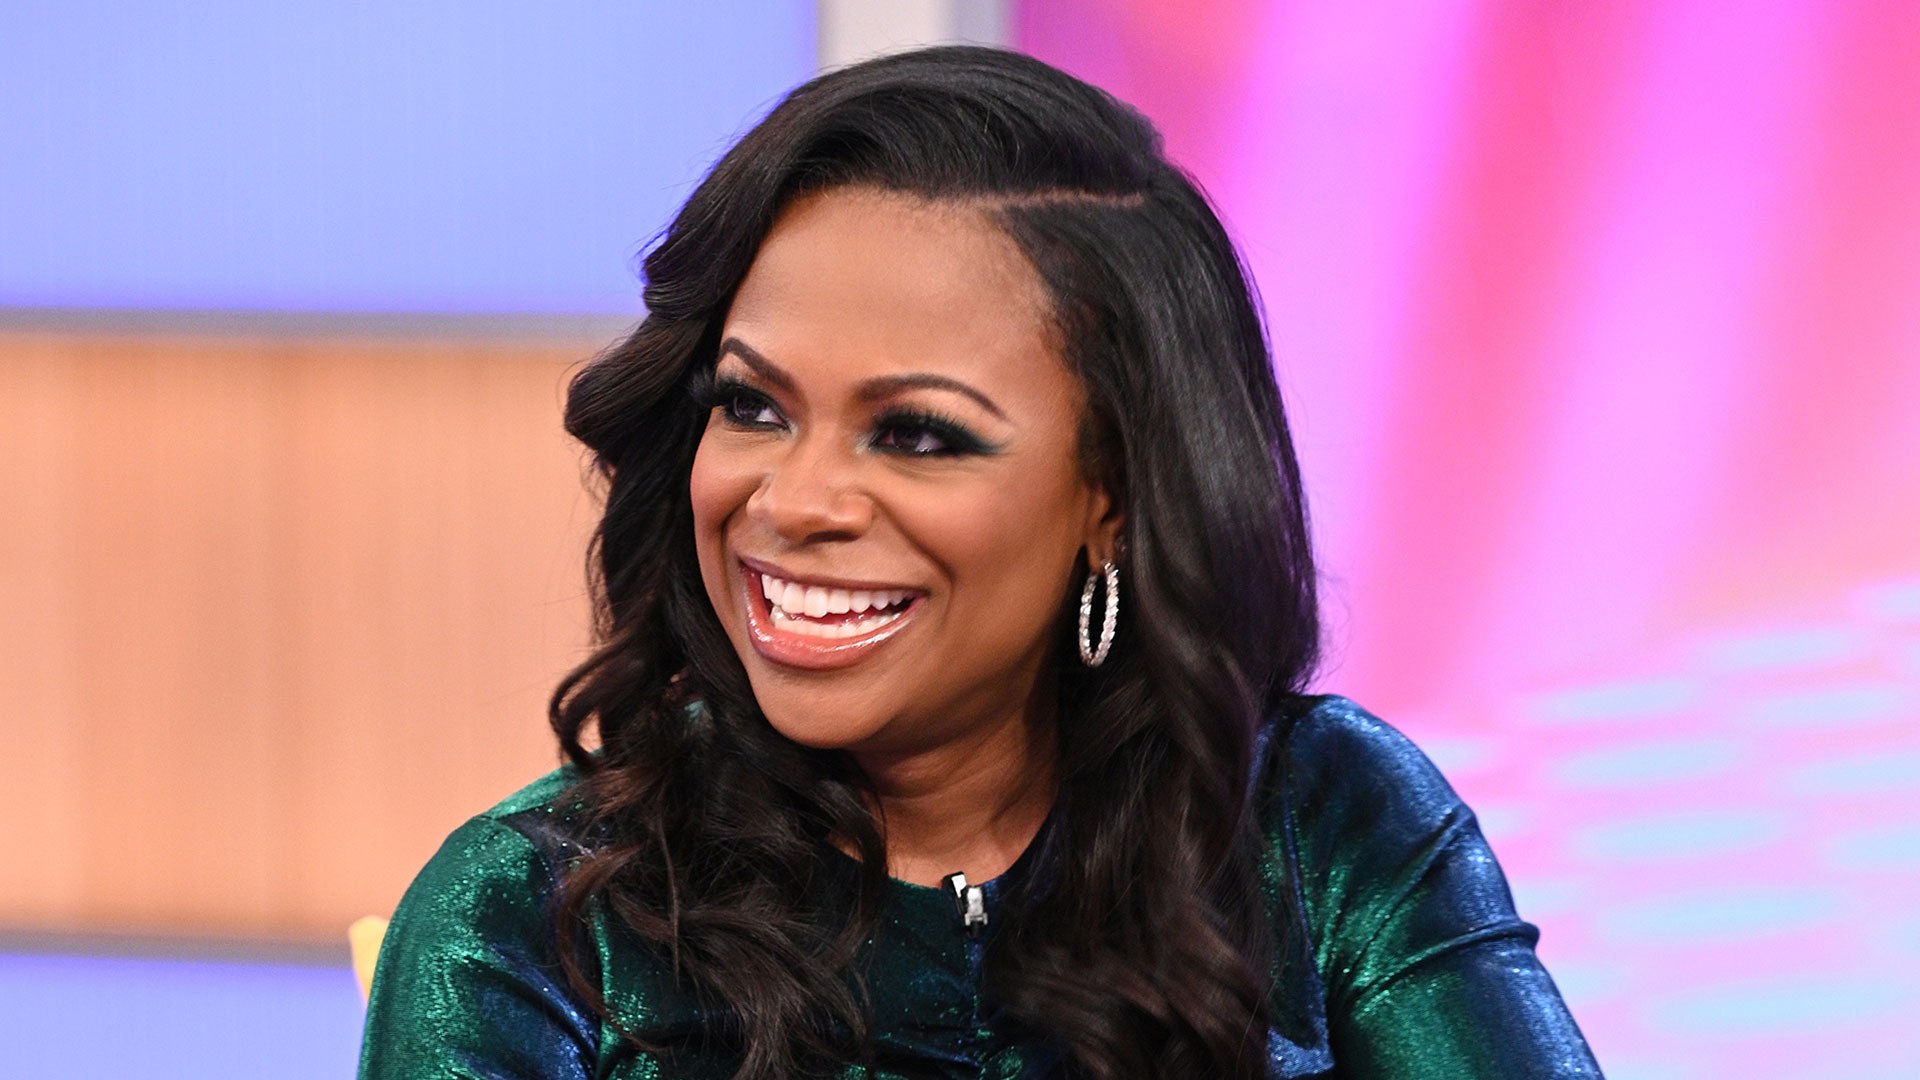 """kandi-burruss-tells-fans-that-the-stakes-have-never-been-higher-for-the-black-community"""